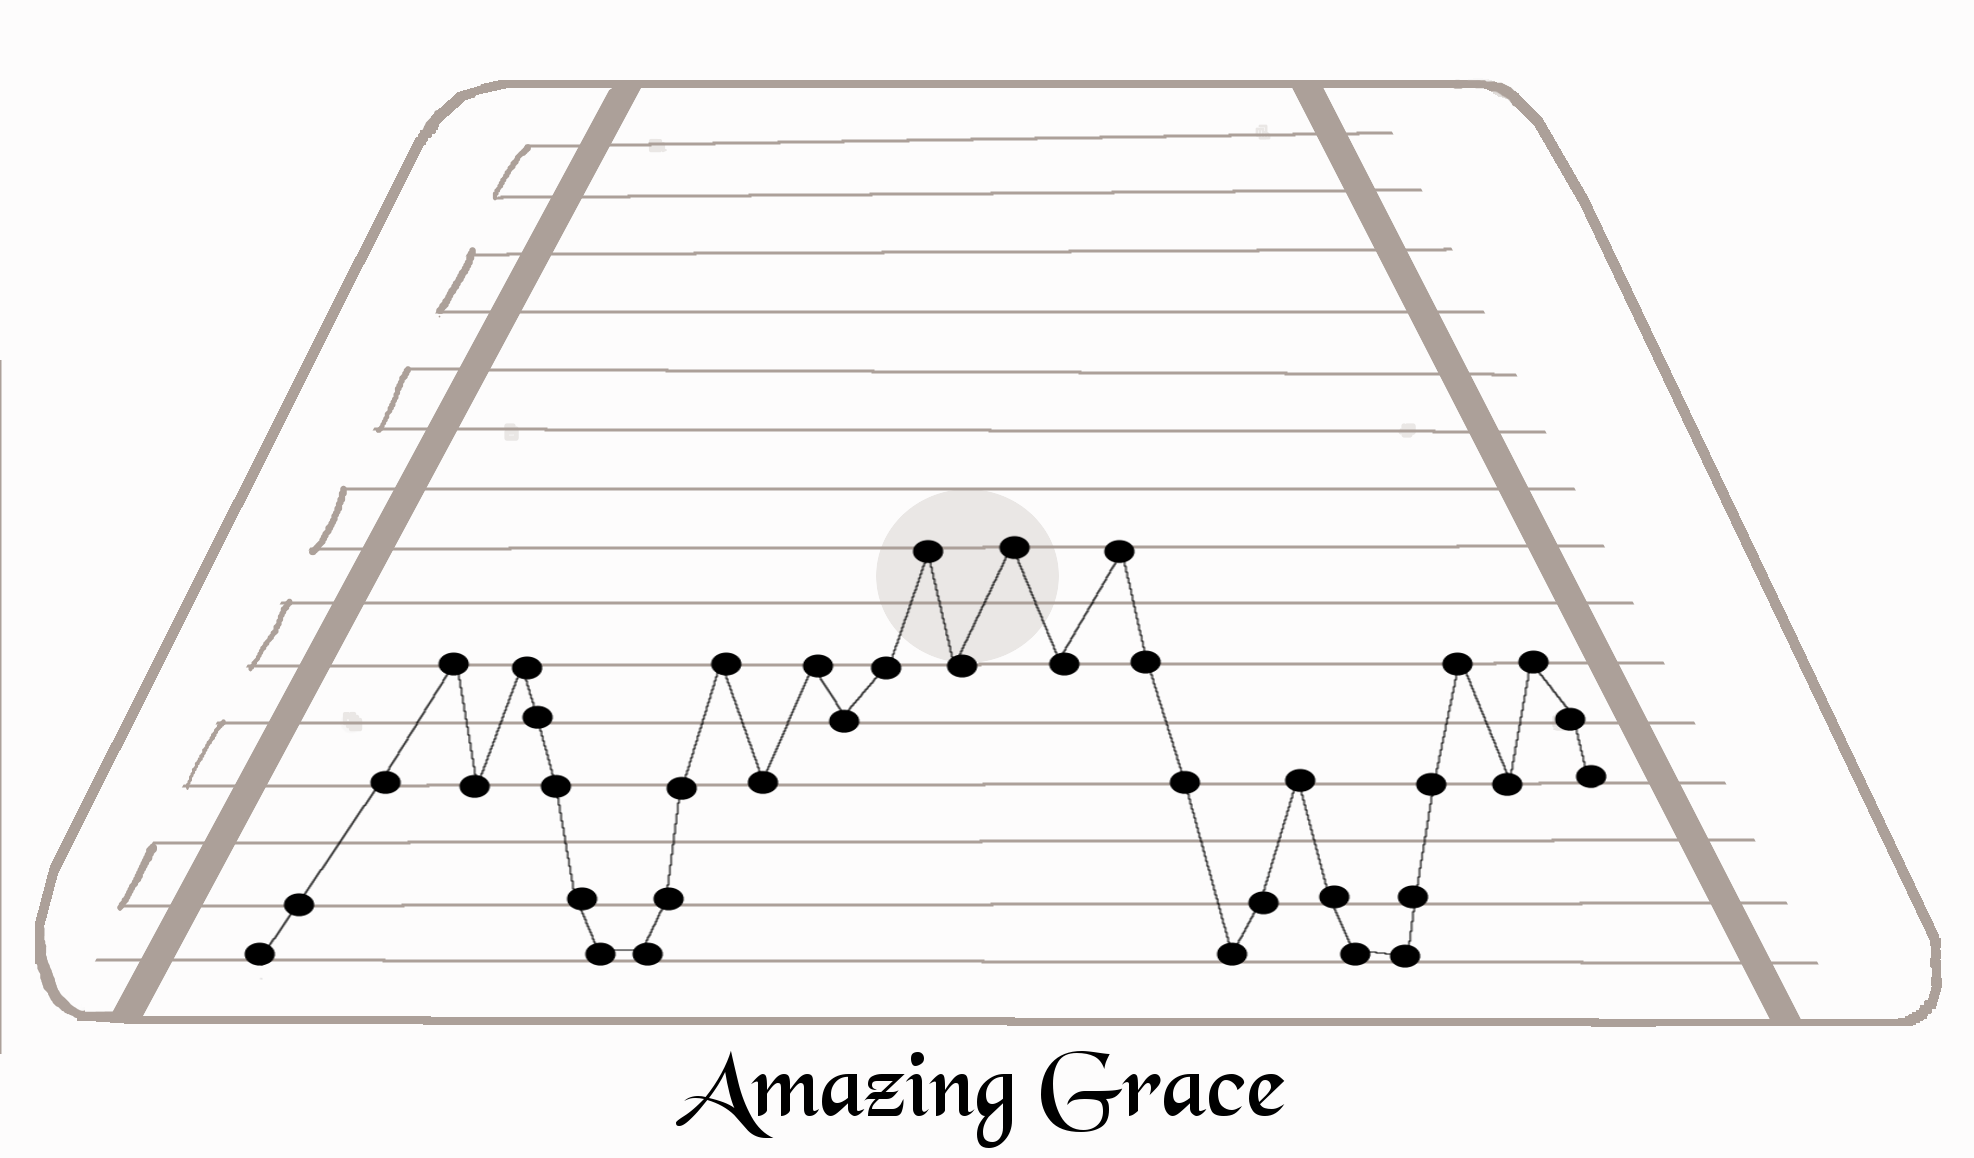 graphic relating to Free Printable Lap Harp Music Cards known as Outstanding grace\